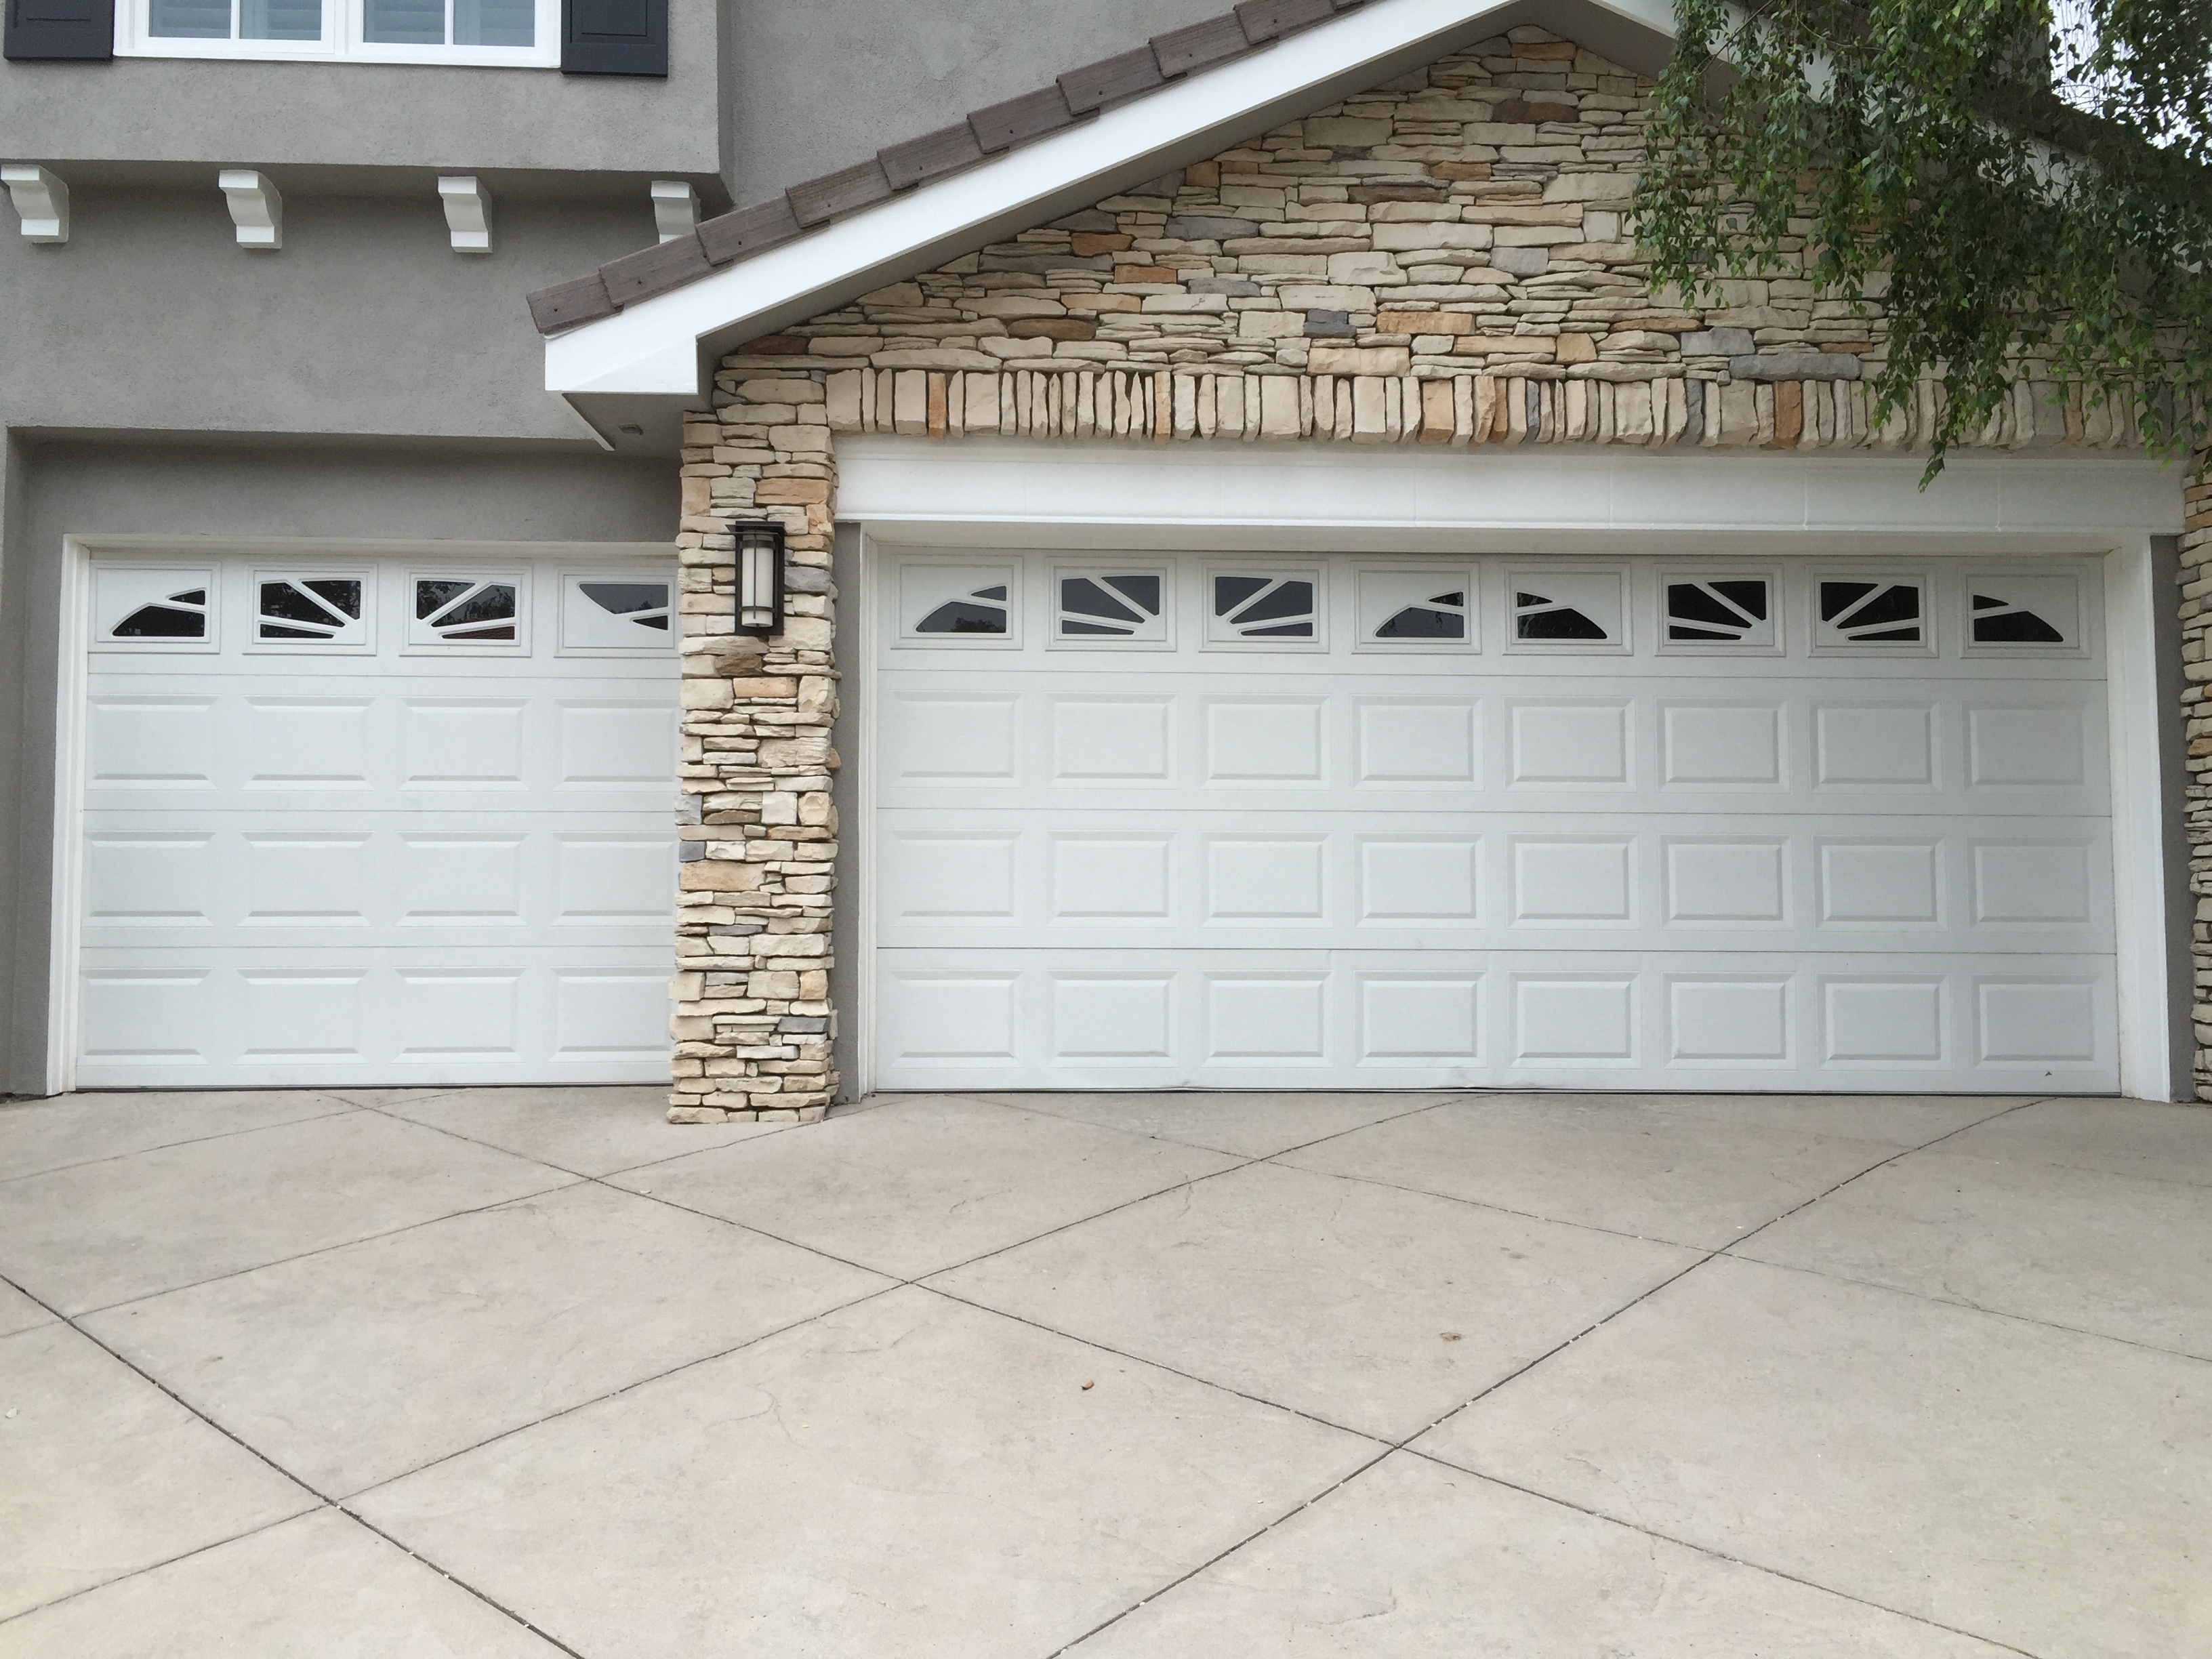 Garage Door Installation in Santa Clarita